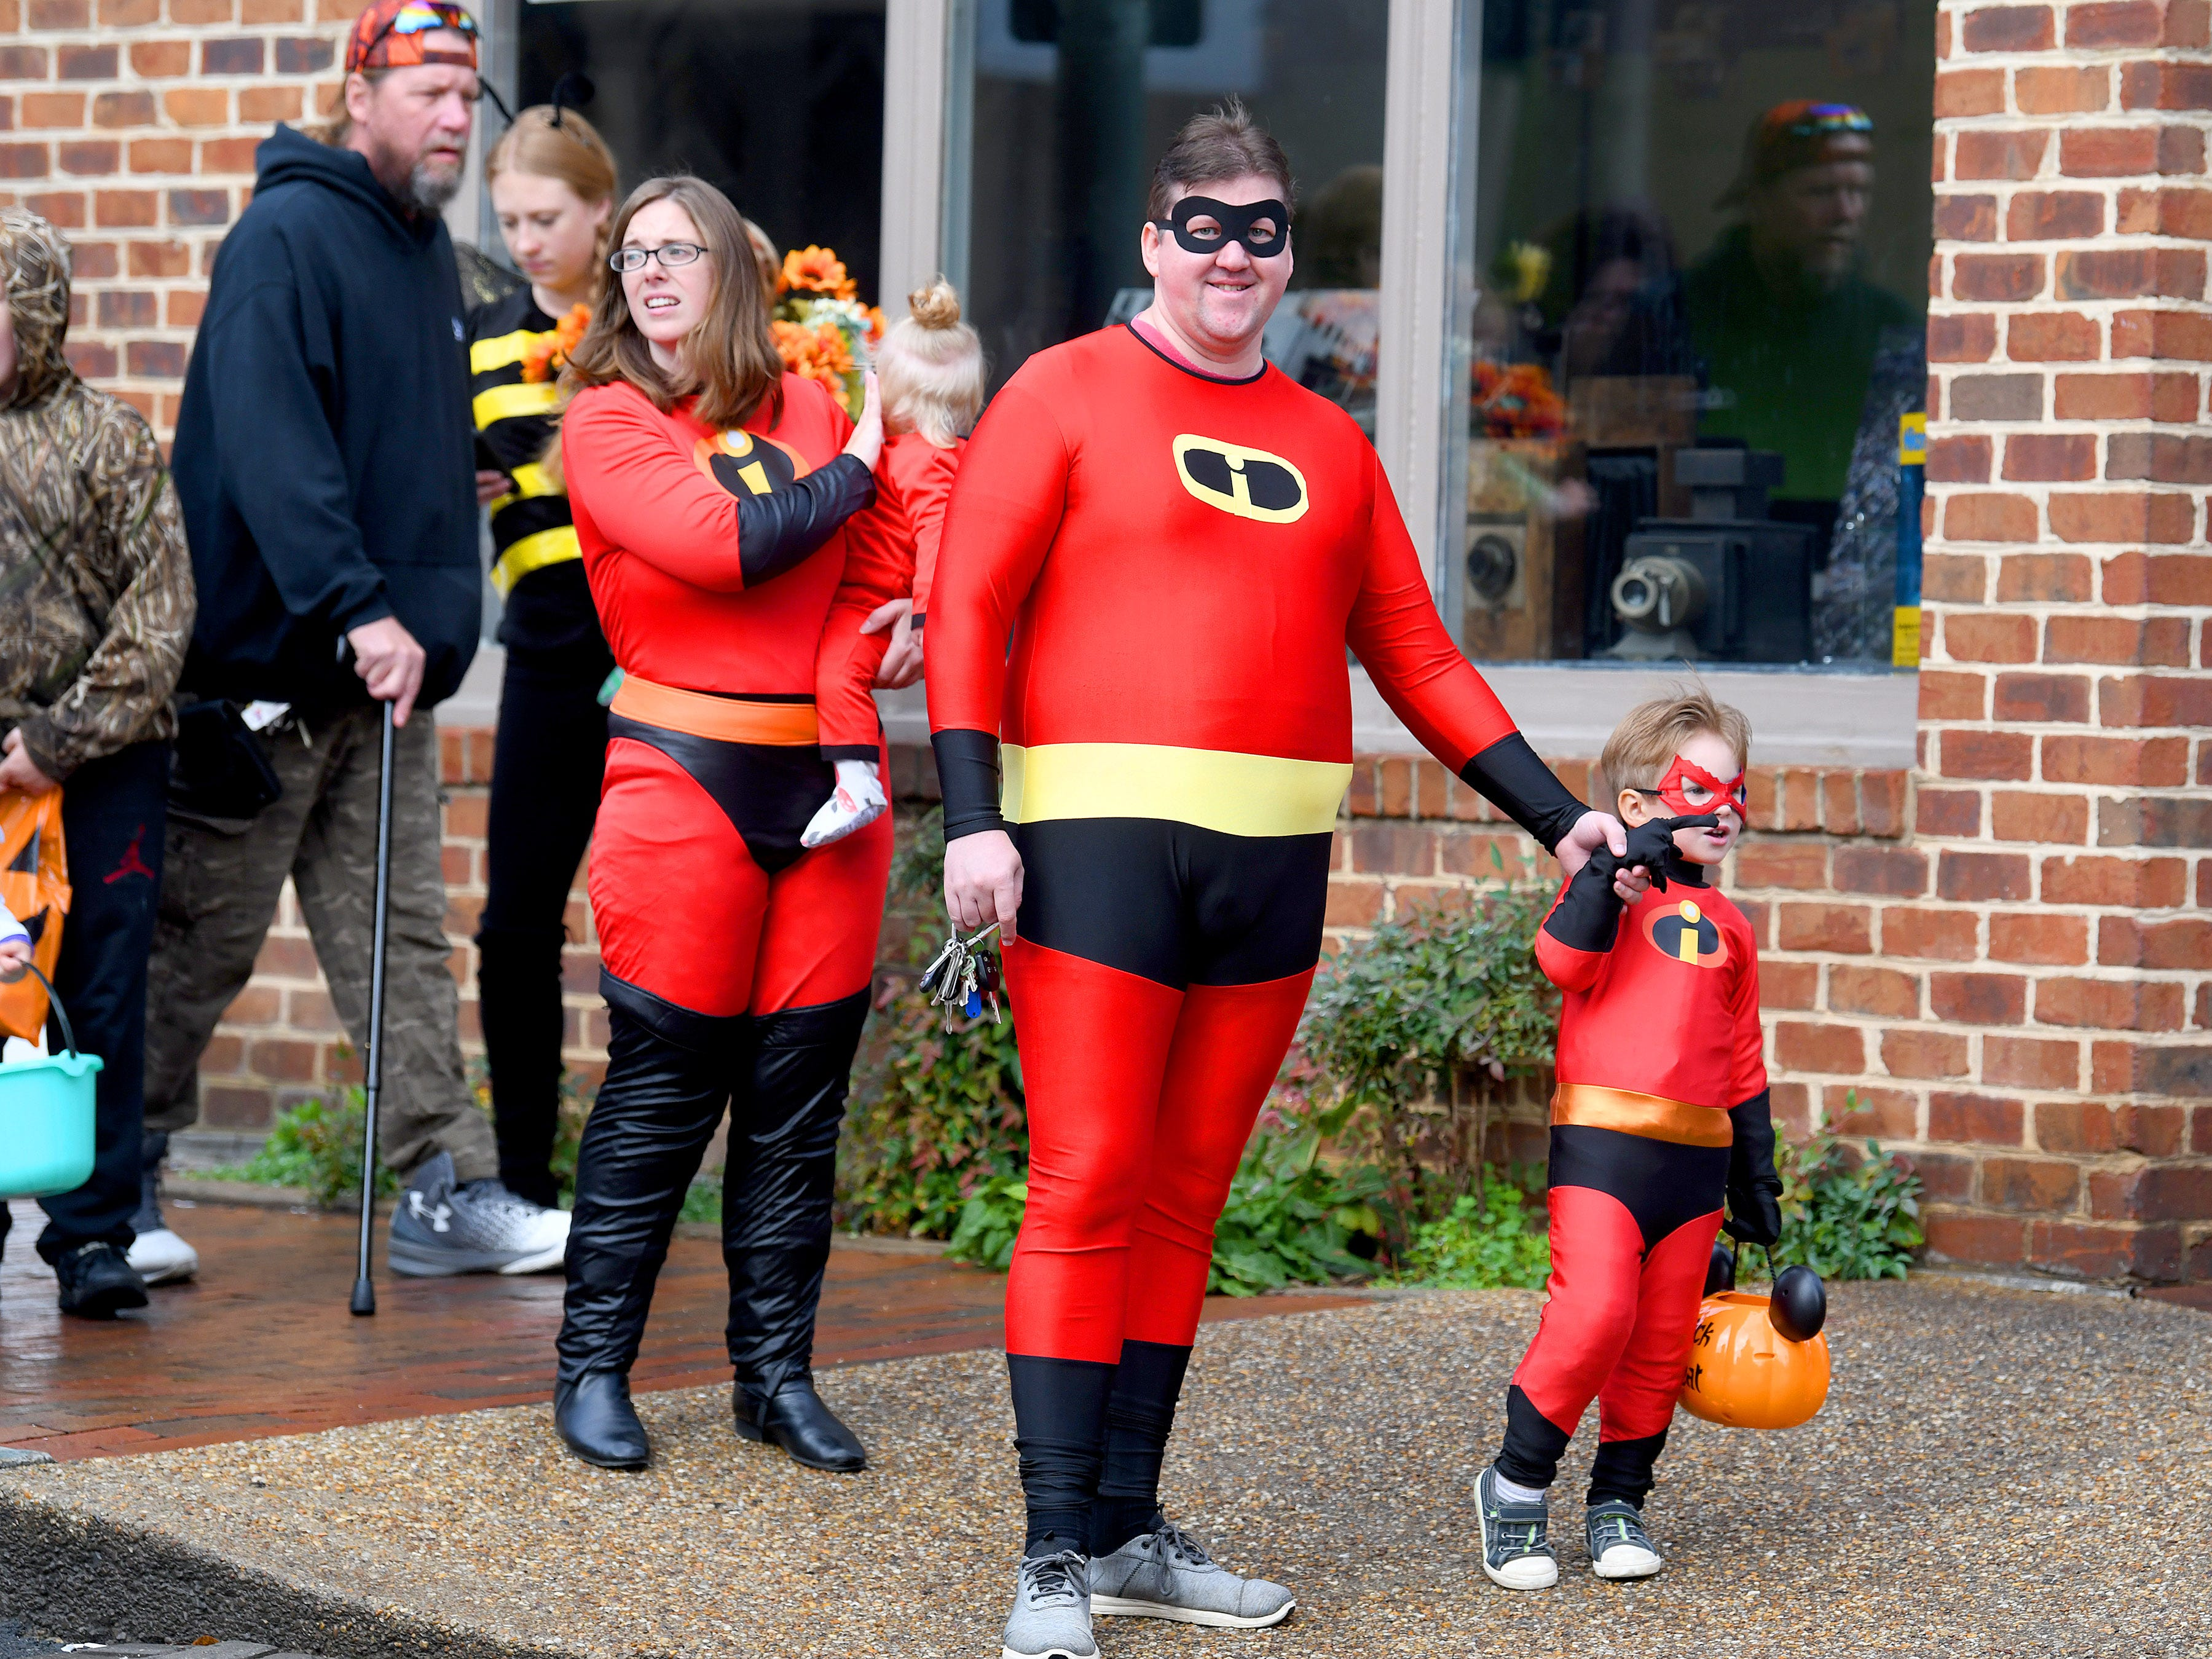 The Incredibles trick-or-treat as a family together in downtown Staunton on Saturday, Oct. 27, 2018.